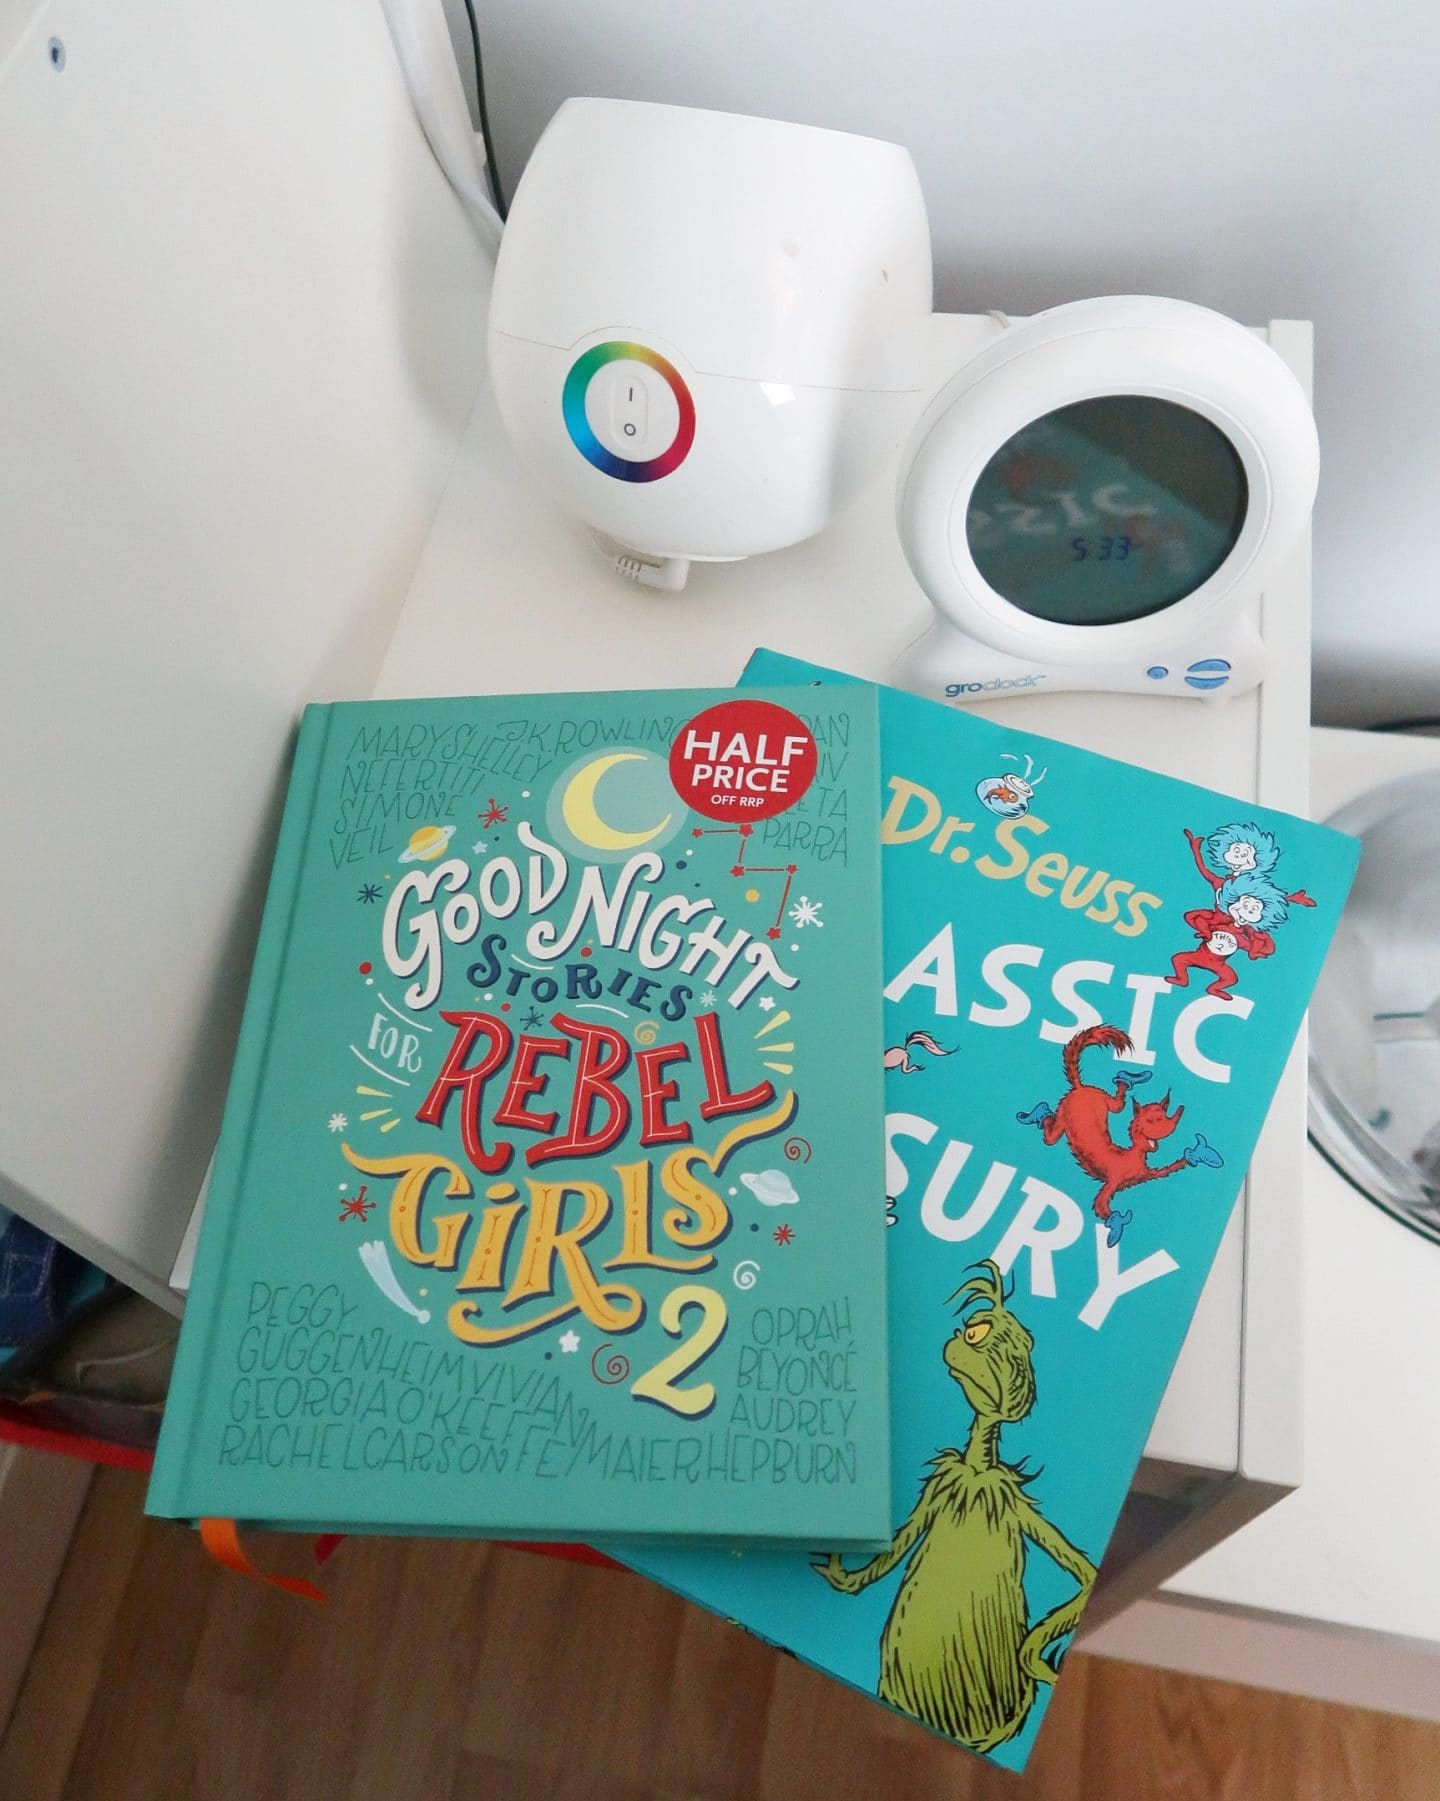 Biggest's favourite stories - Dr Suess and Goodnight Stories for Rebel girls. Bath, book, bed with booktrust